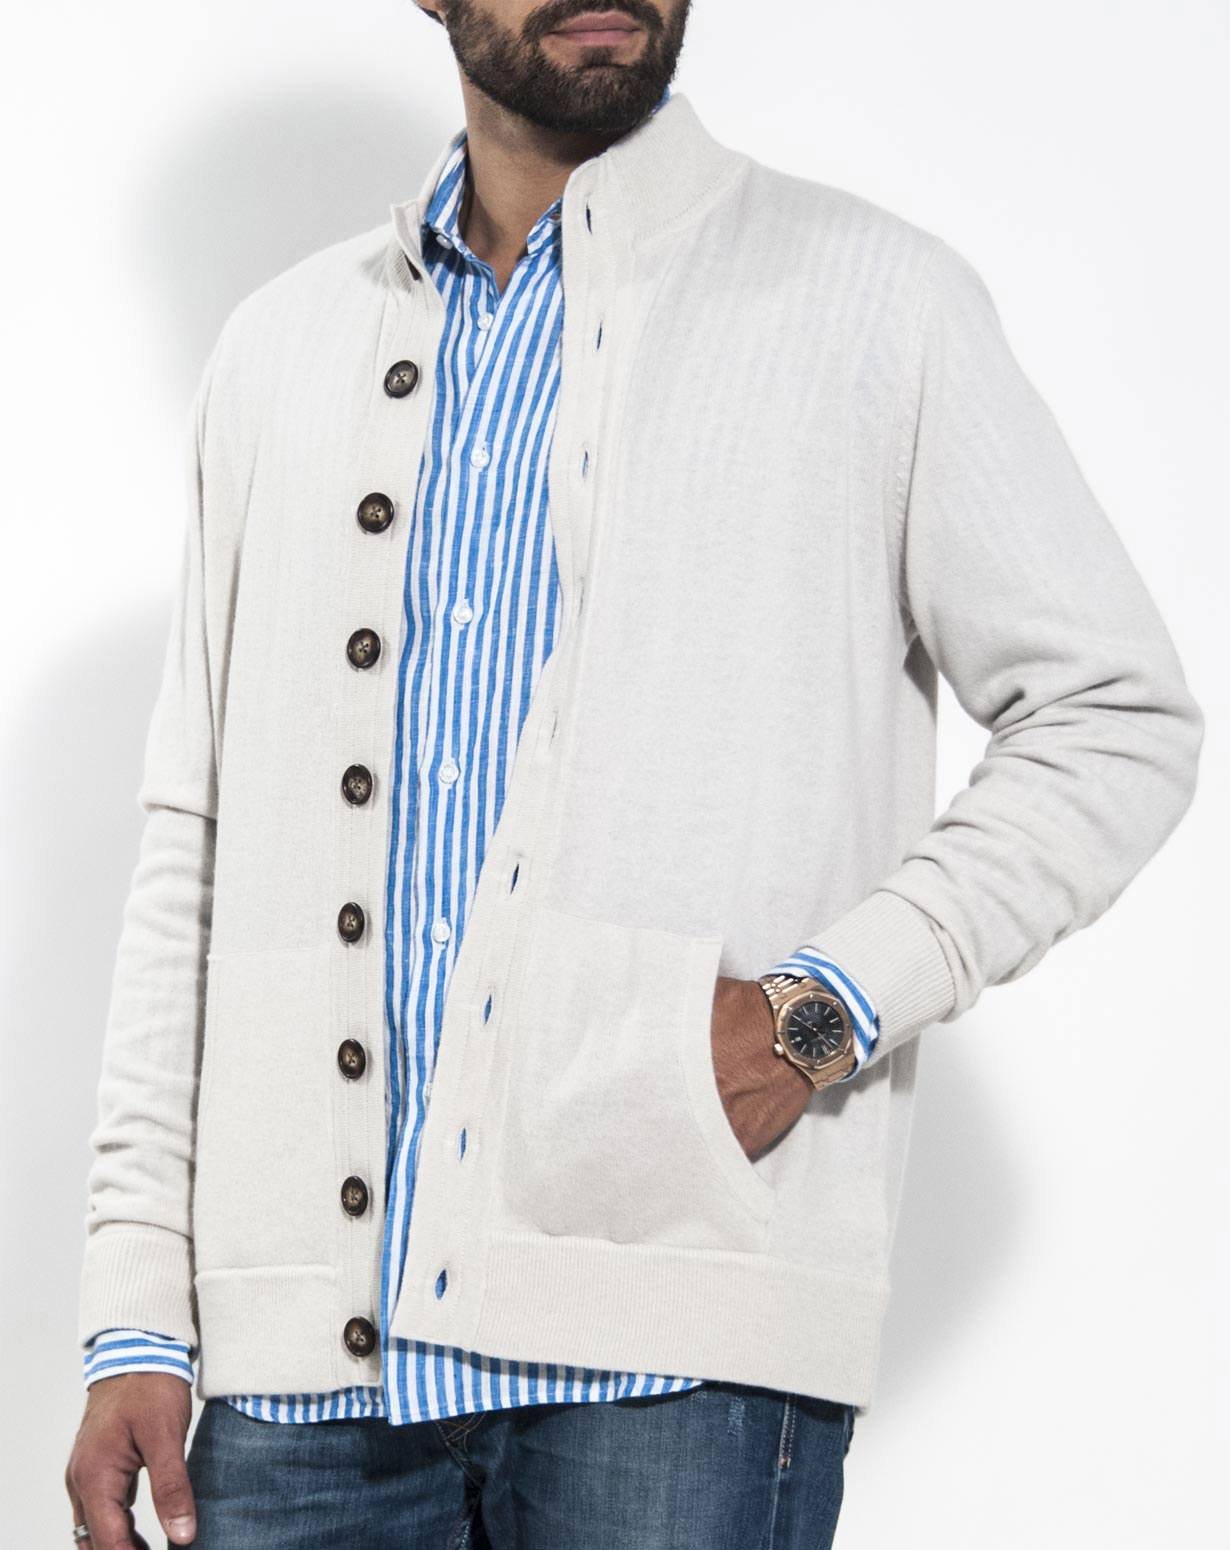 Polo Cardigan Mens - Gray Cardigan Sweater